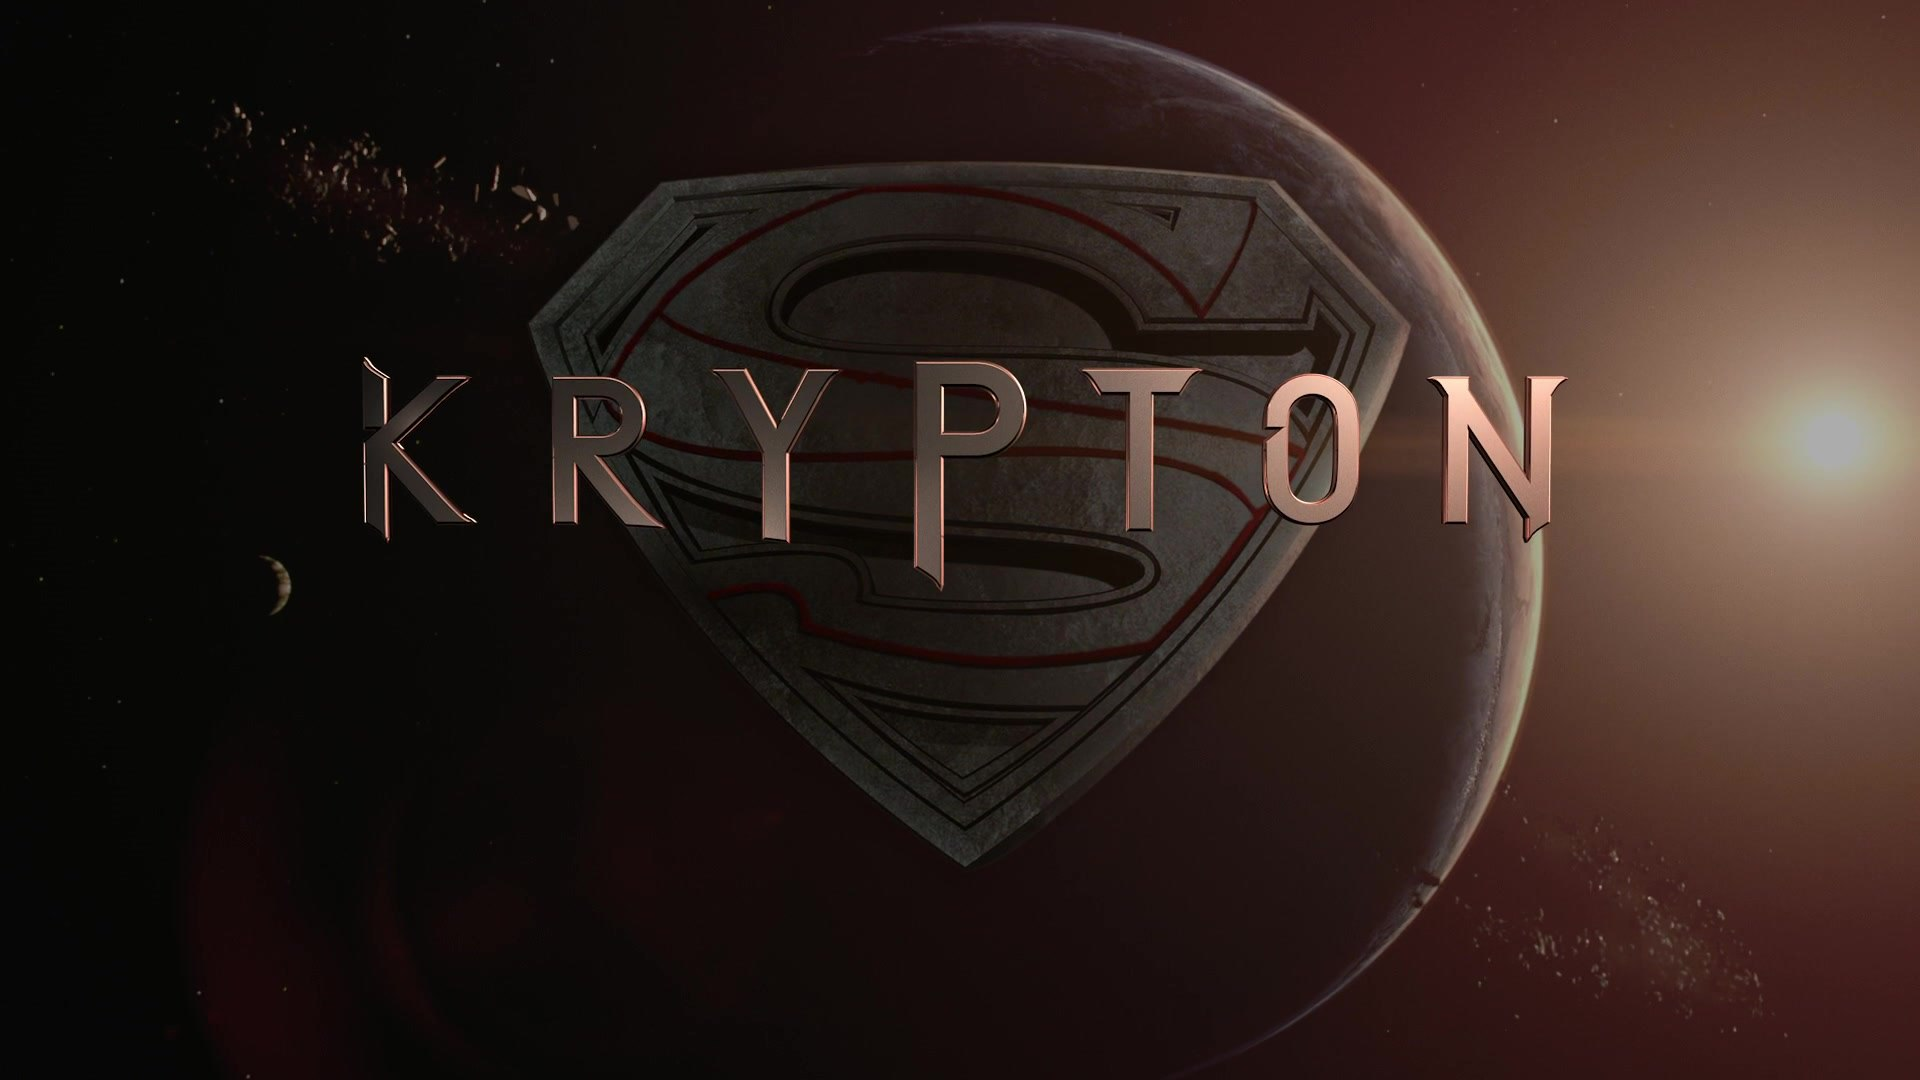 Krypton (TV Series) Episode: Zods and Monsters